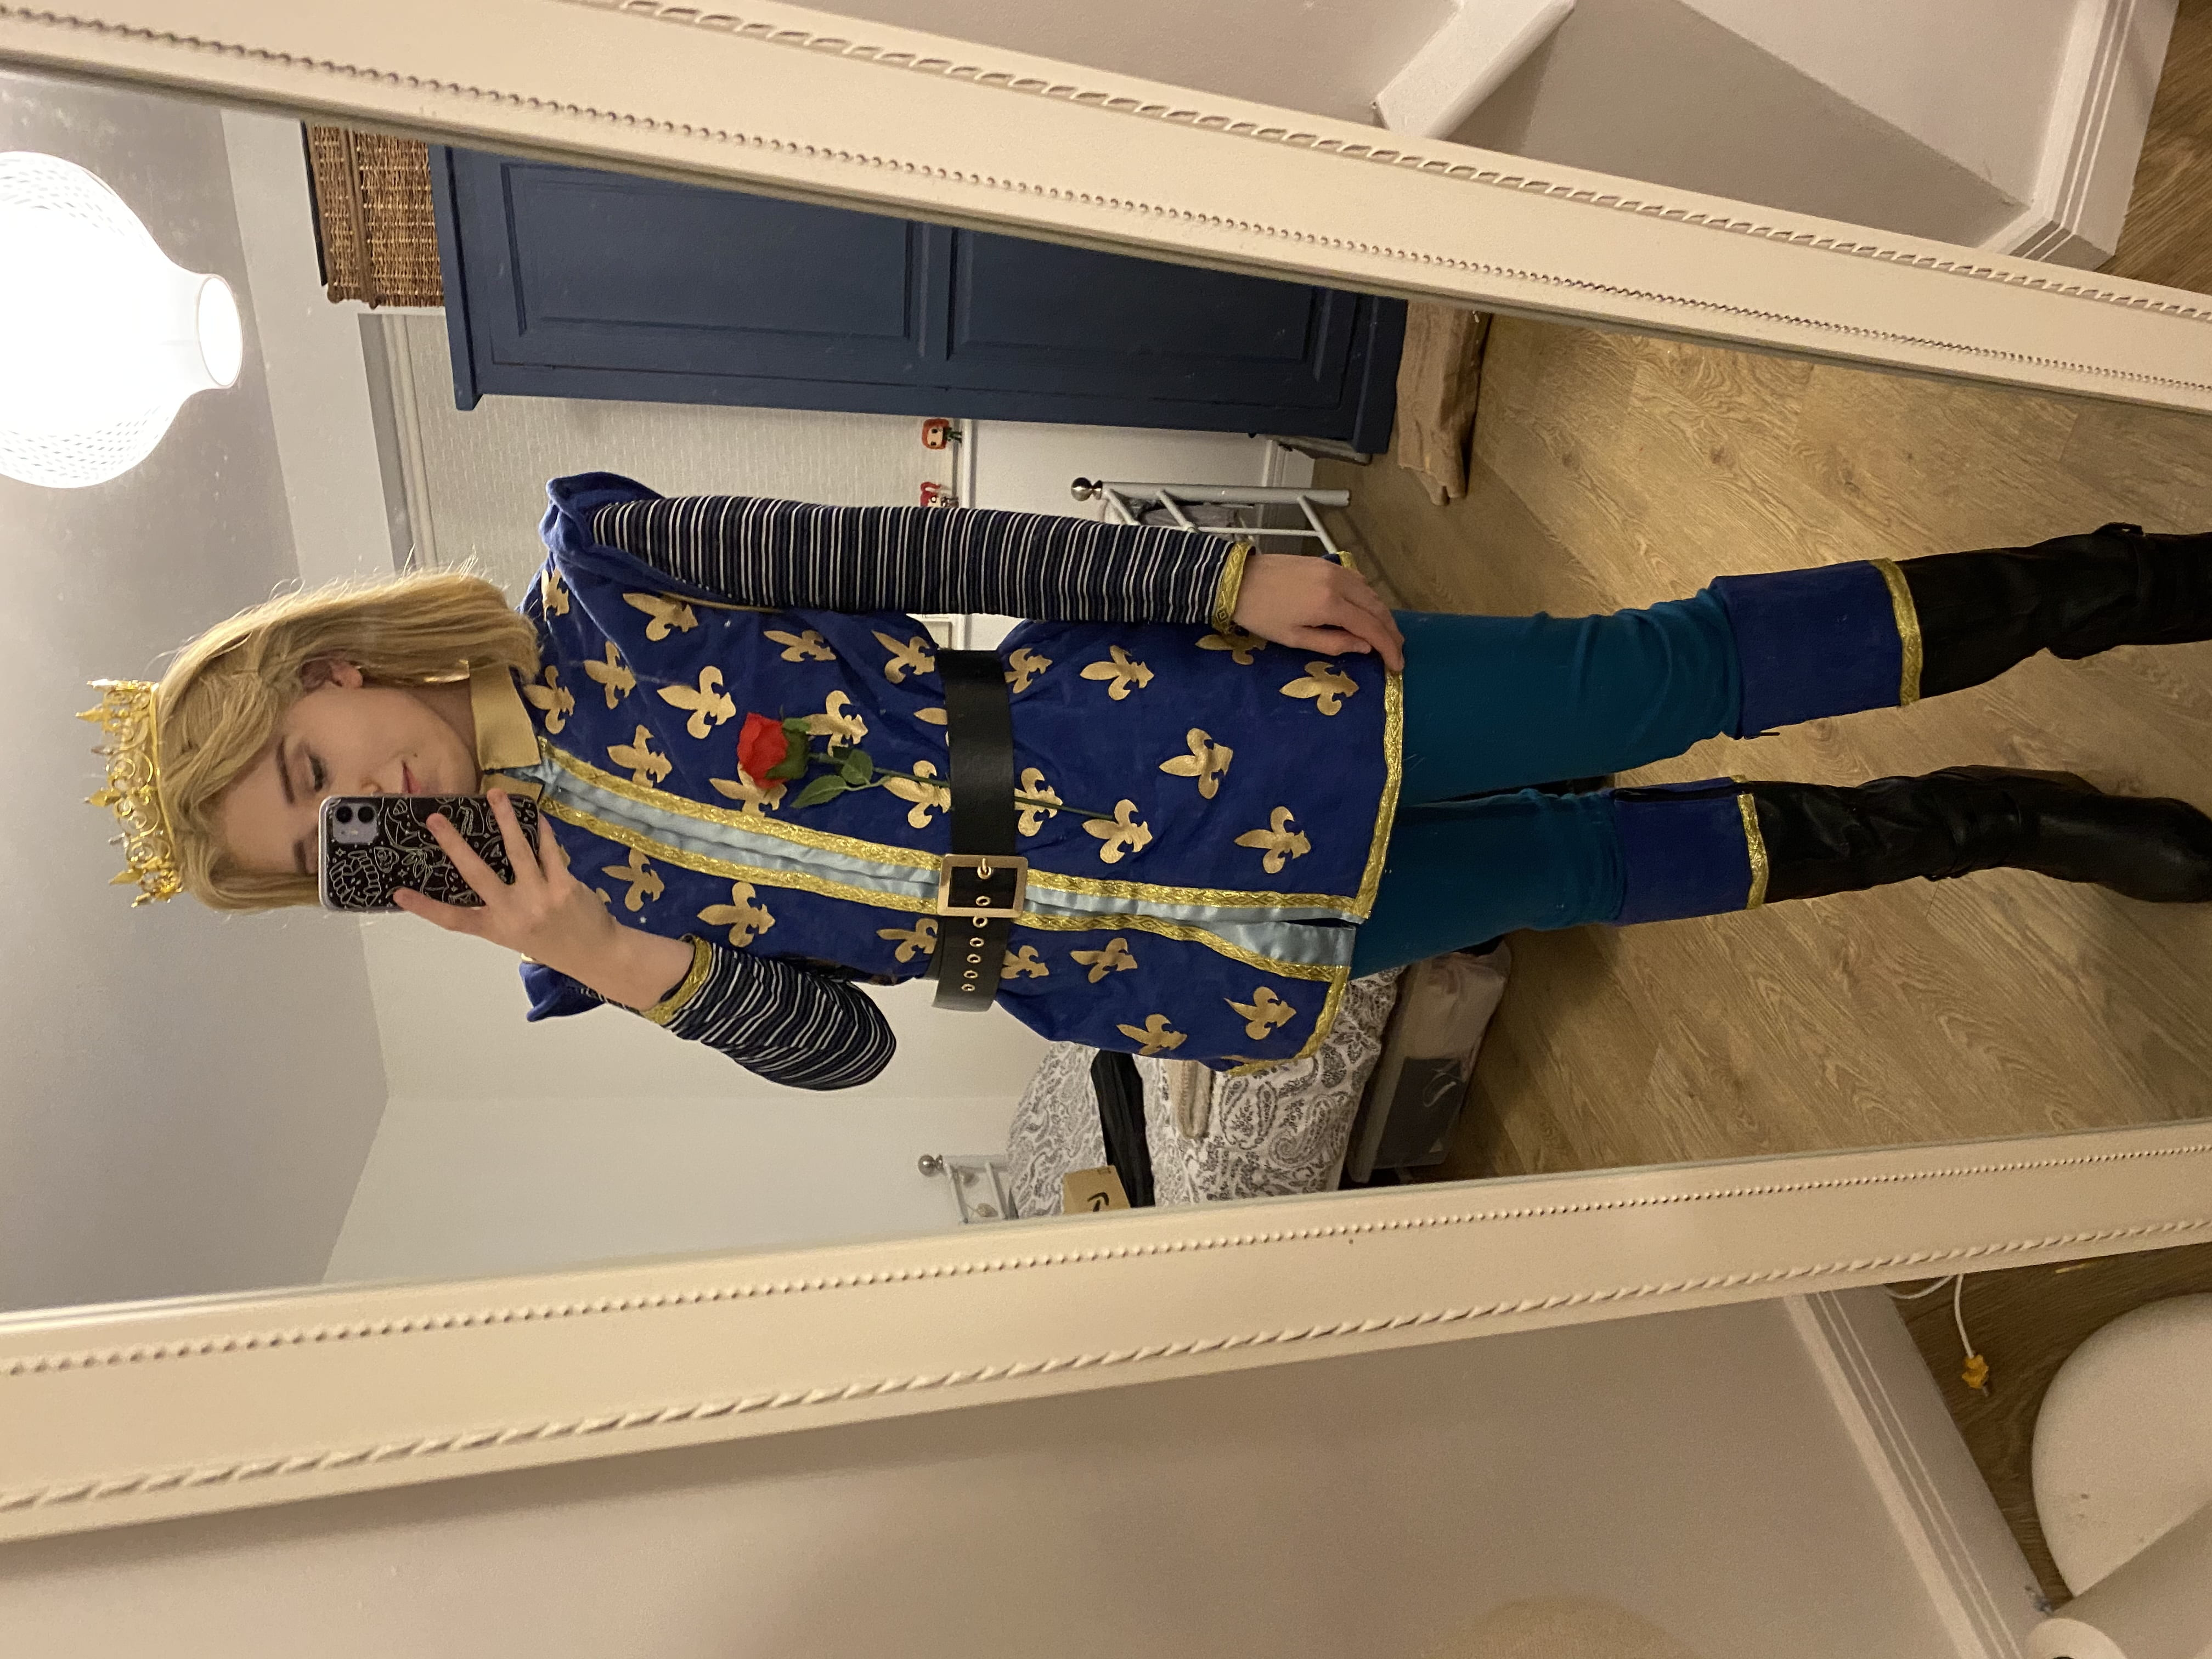 Full image of the blonde wig and gold crown, blue and gold bodice, blue leggings, black boots with a blue and gold trim and a black belt. A fake rose is tucked into the belt.